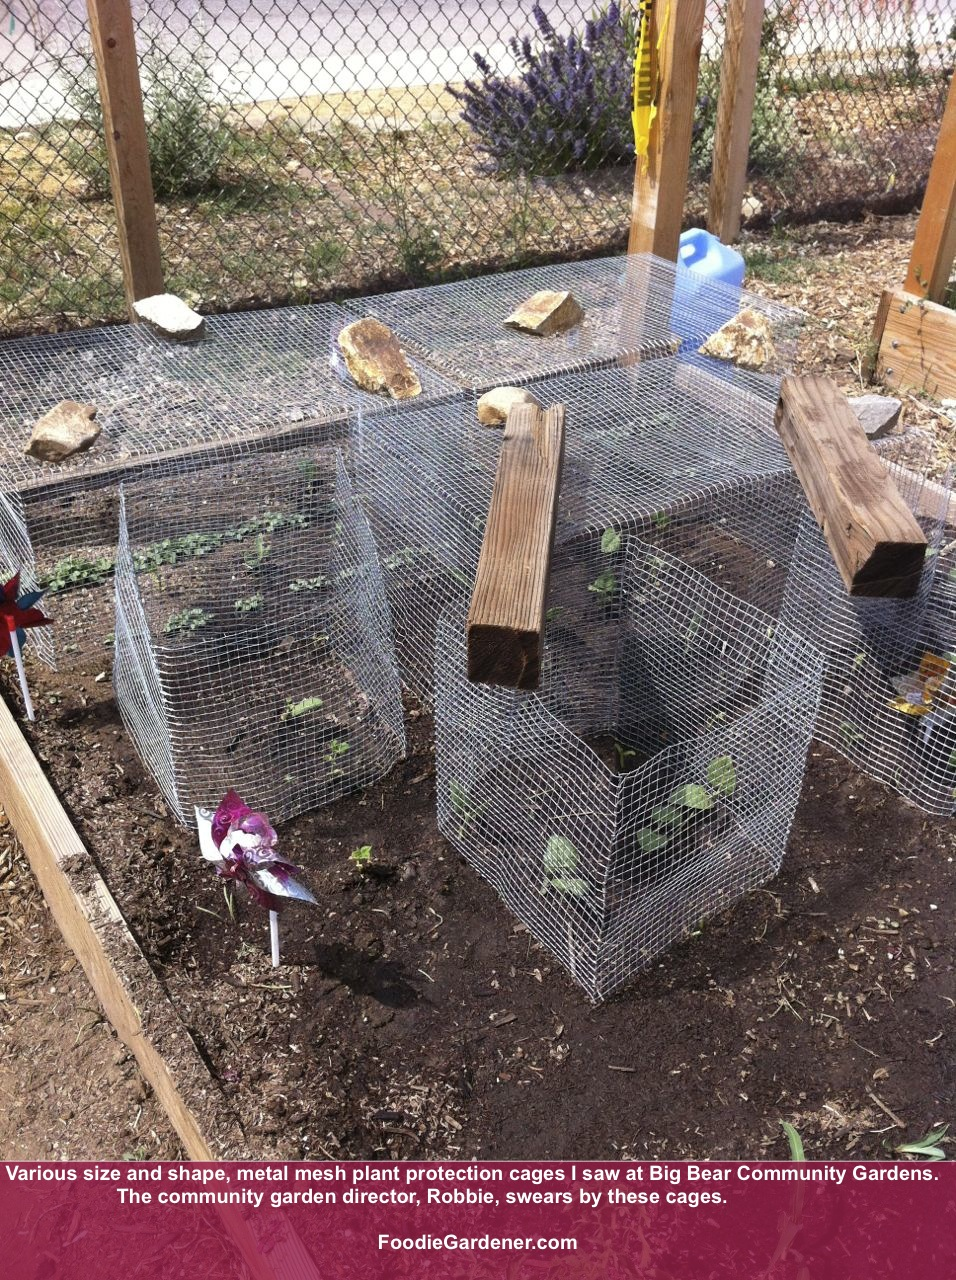 Metal Vegetable Protection Cages As Seen In A Community Garden Raised  Vegetable Garden.